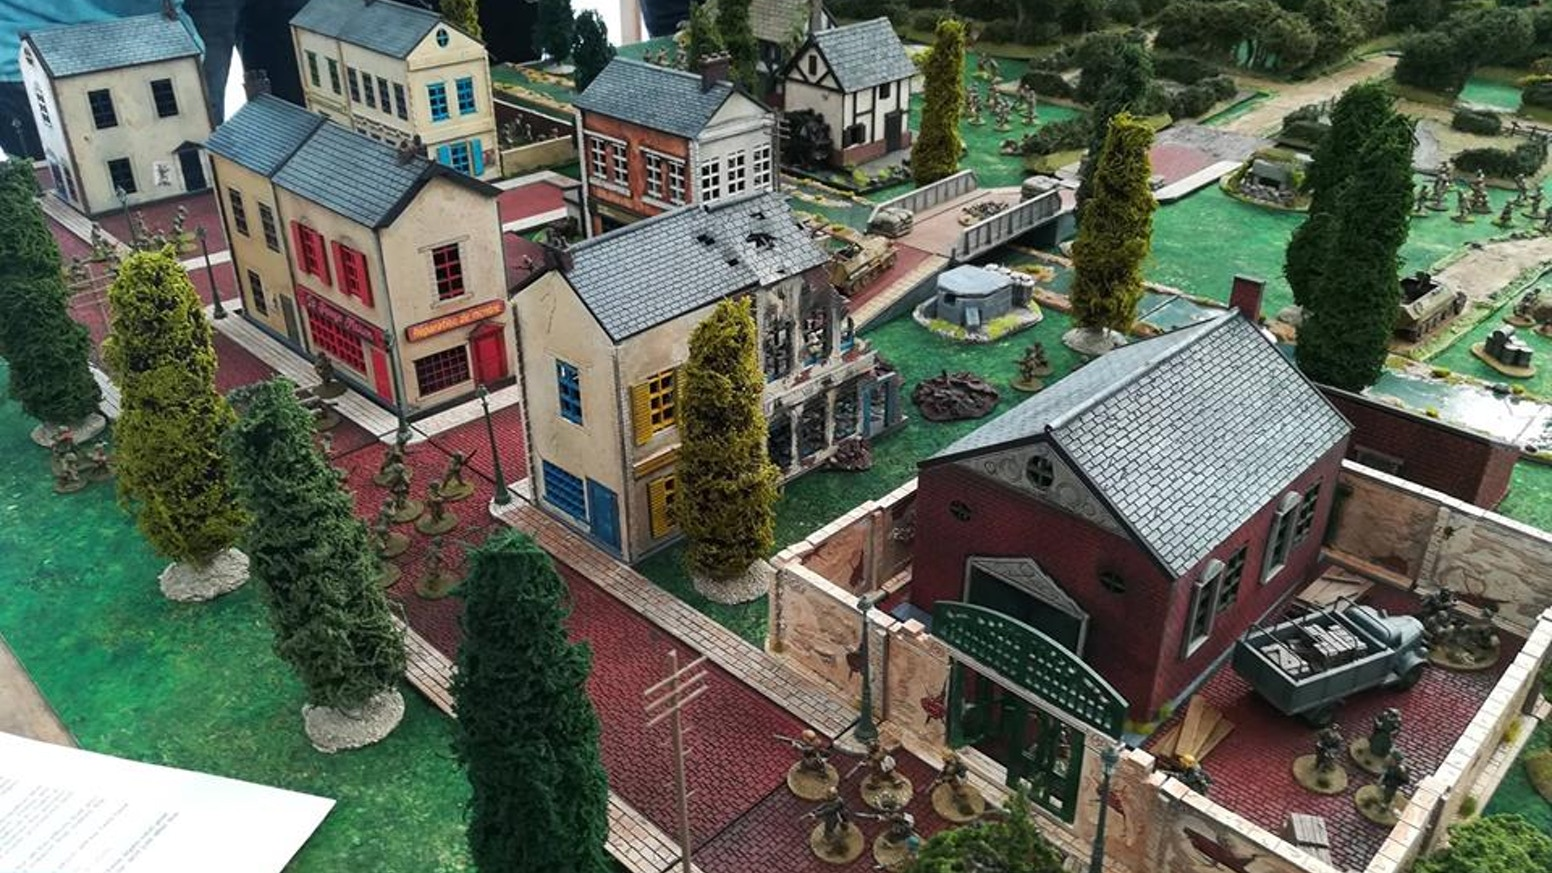 Ministry of Buildings - 28mm and 15mm Wargames Terrain by MoB Games